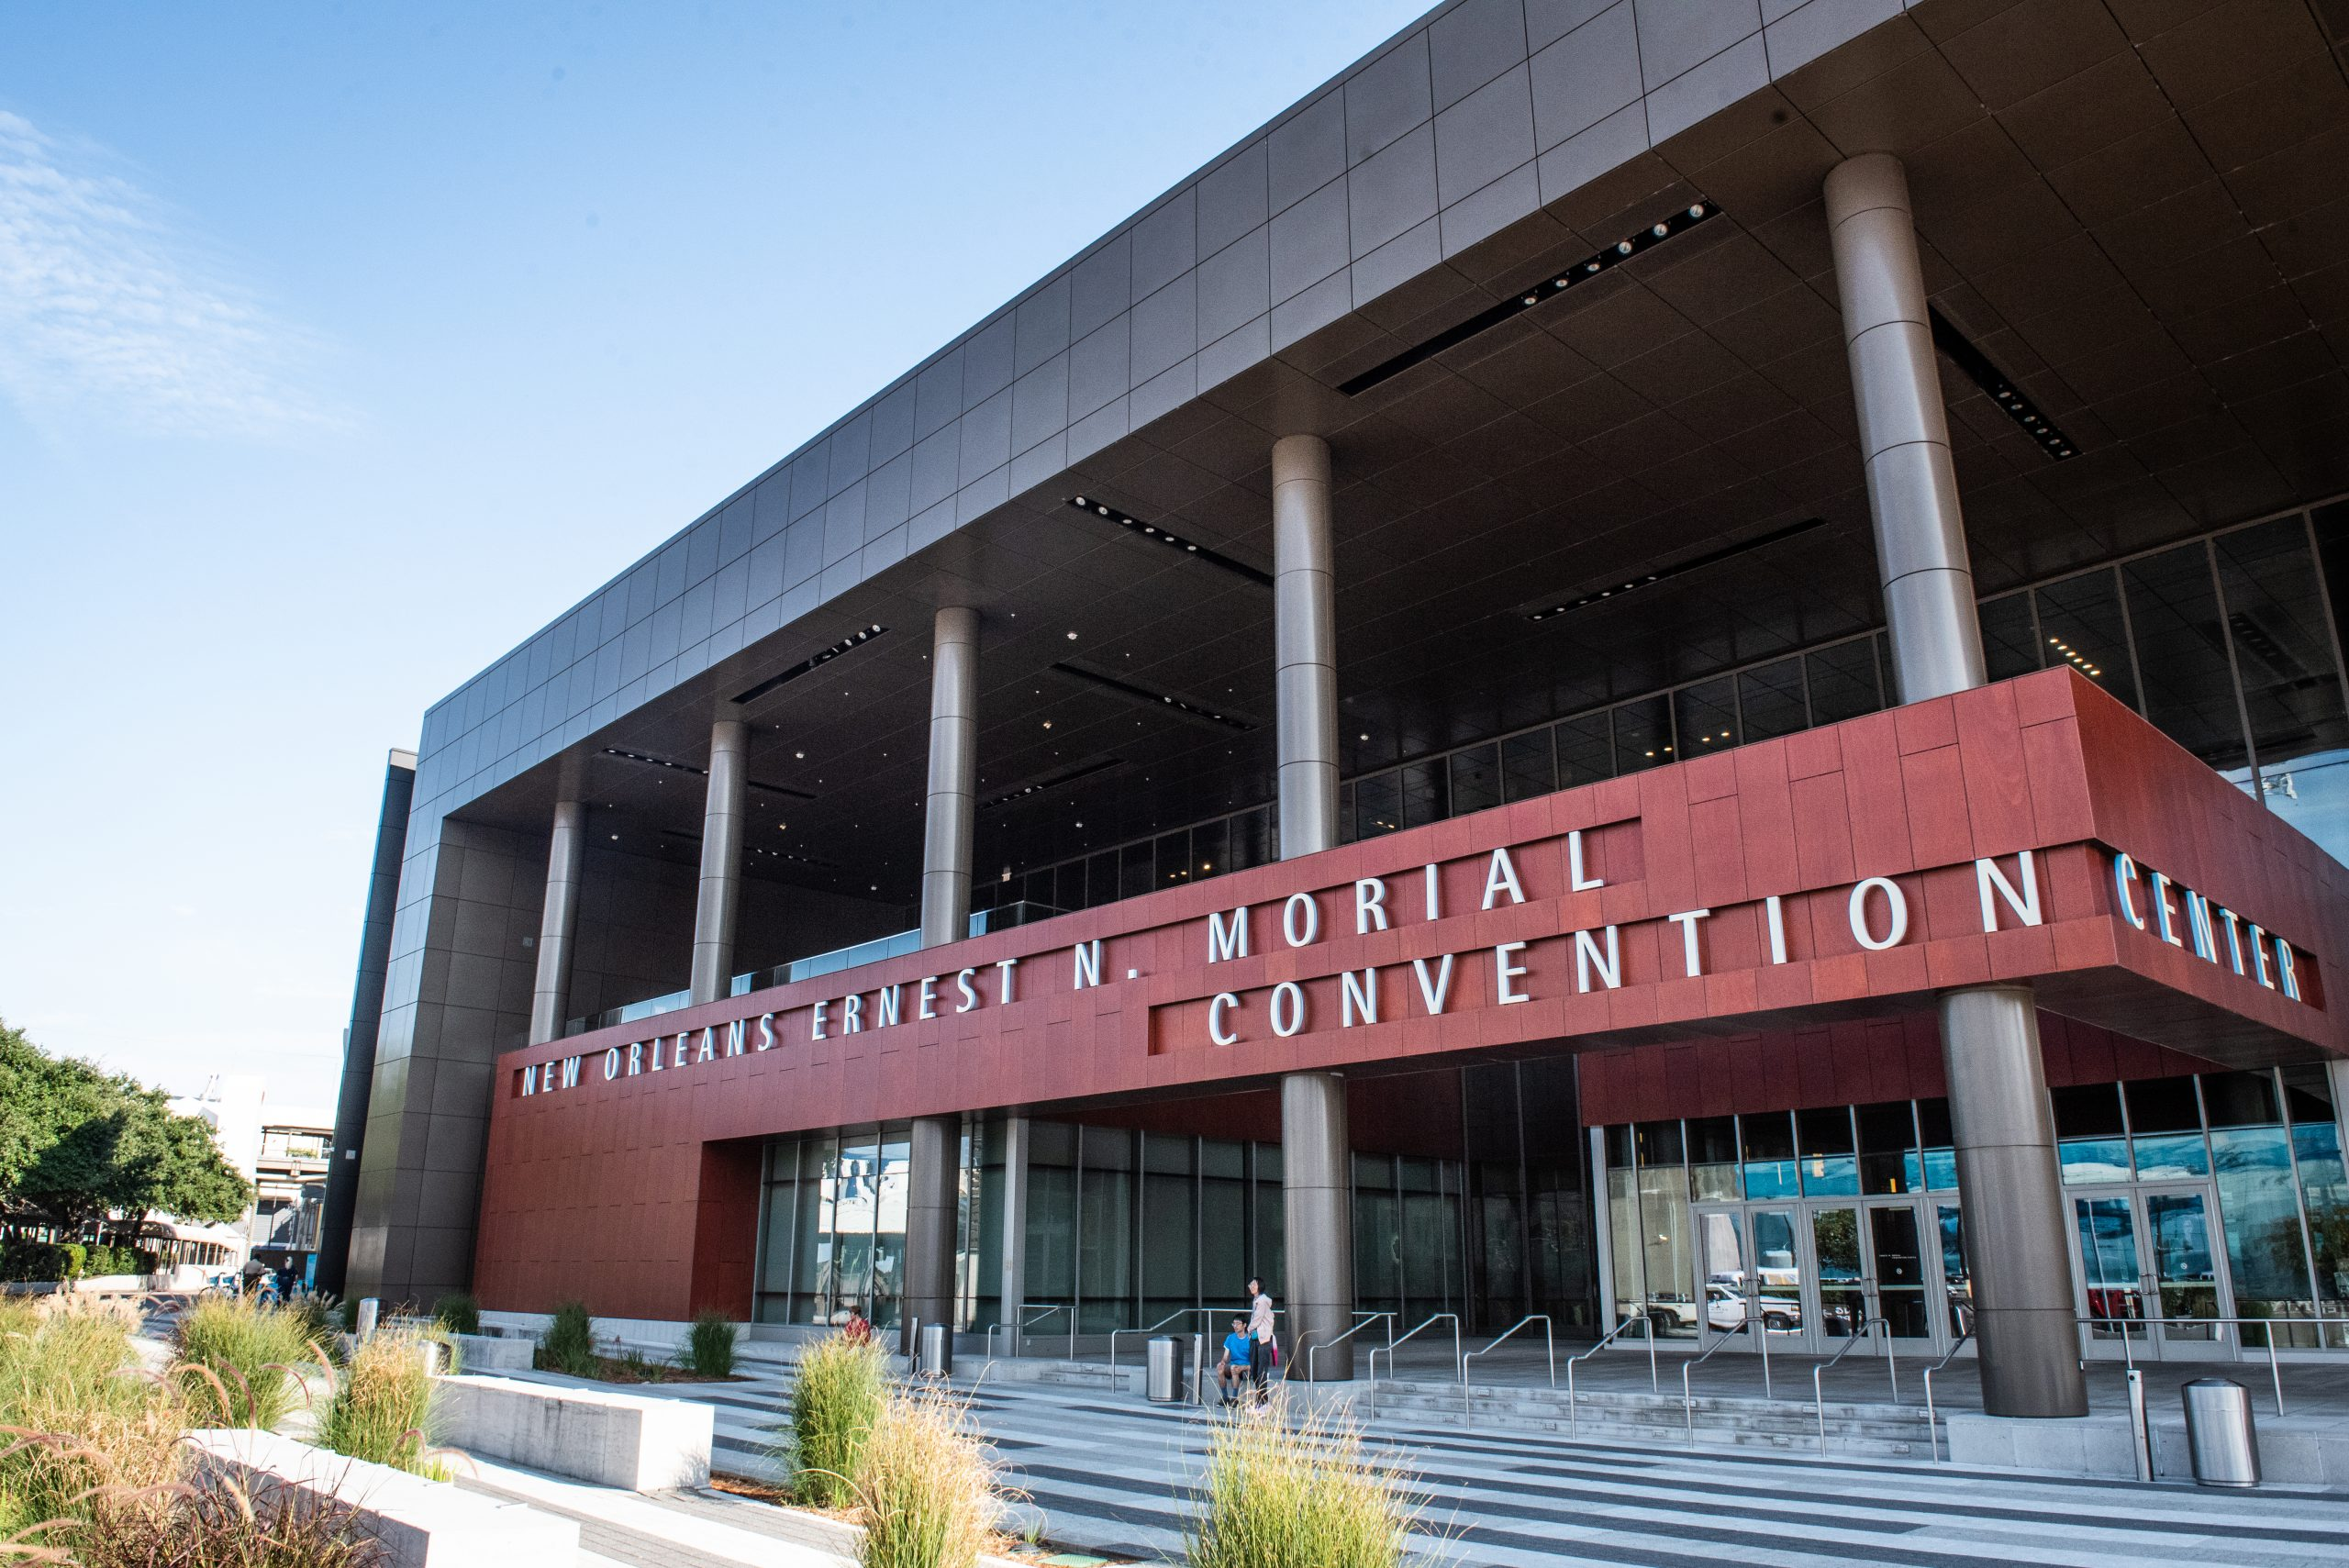 Convention Center proposes agreement to end RTA hotel tax dispute, board member says | The Lens